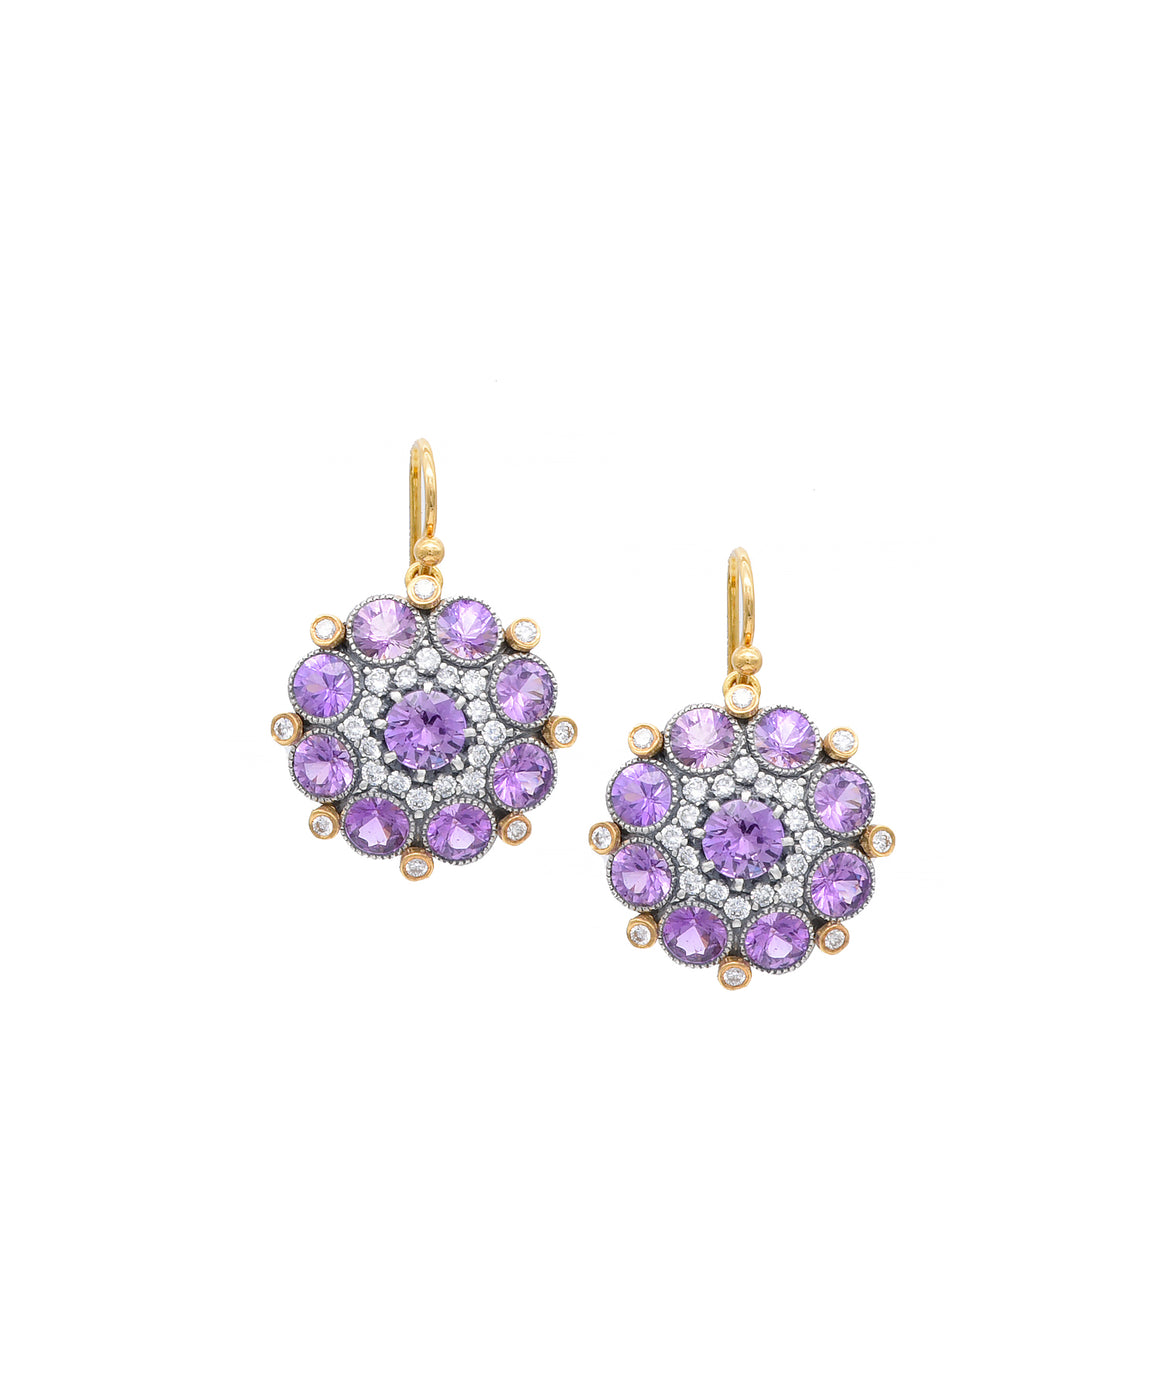 Purple Sapphire Cupcake earrings